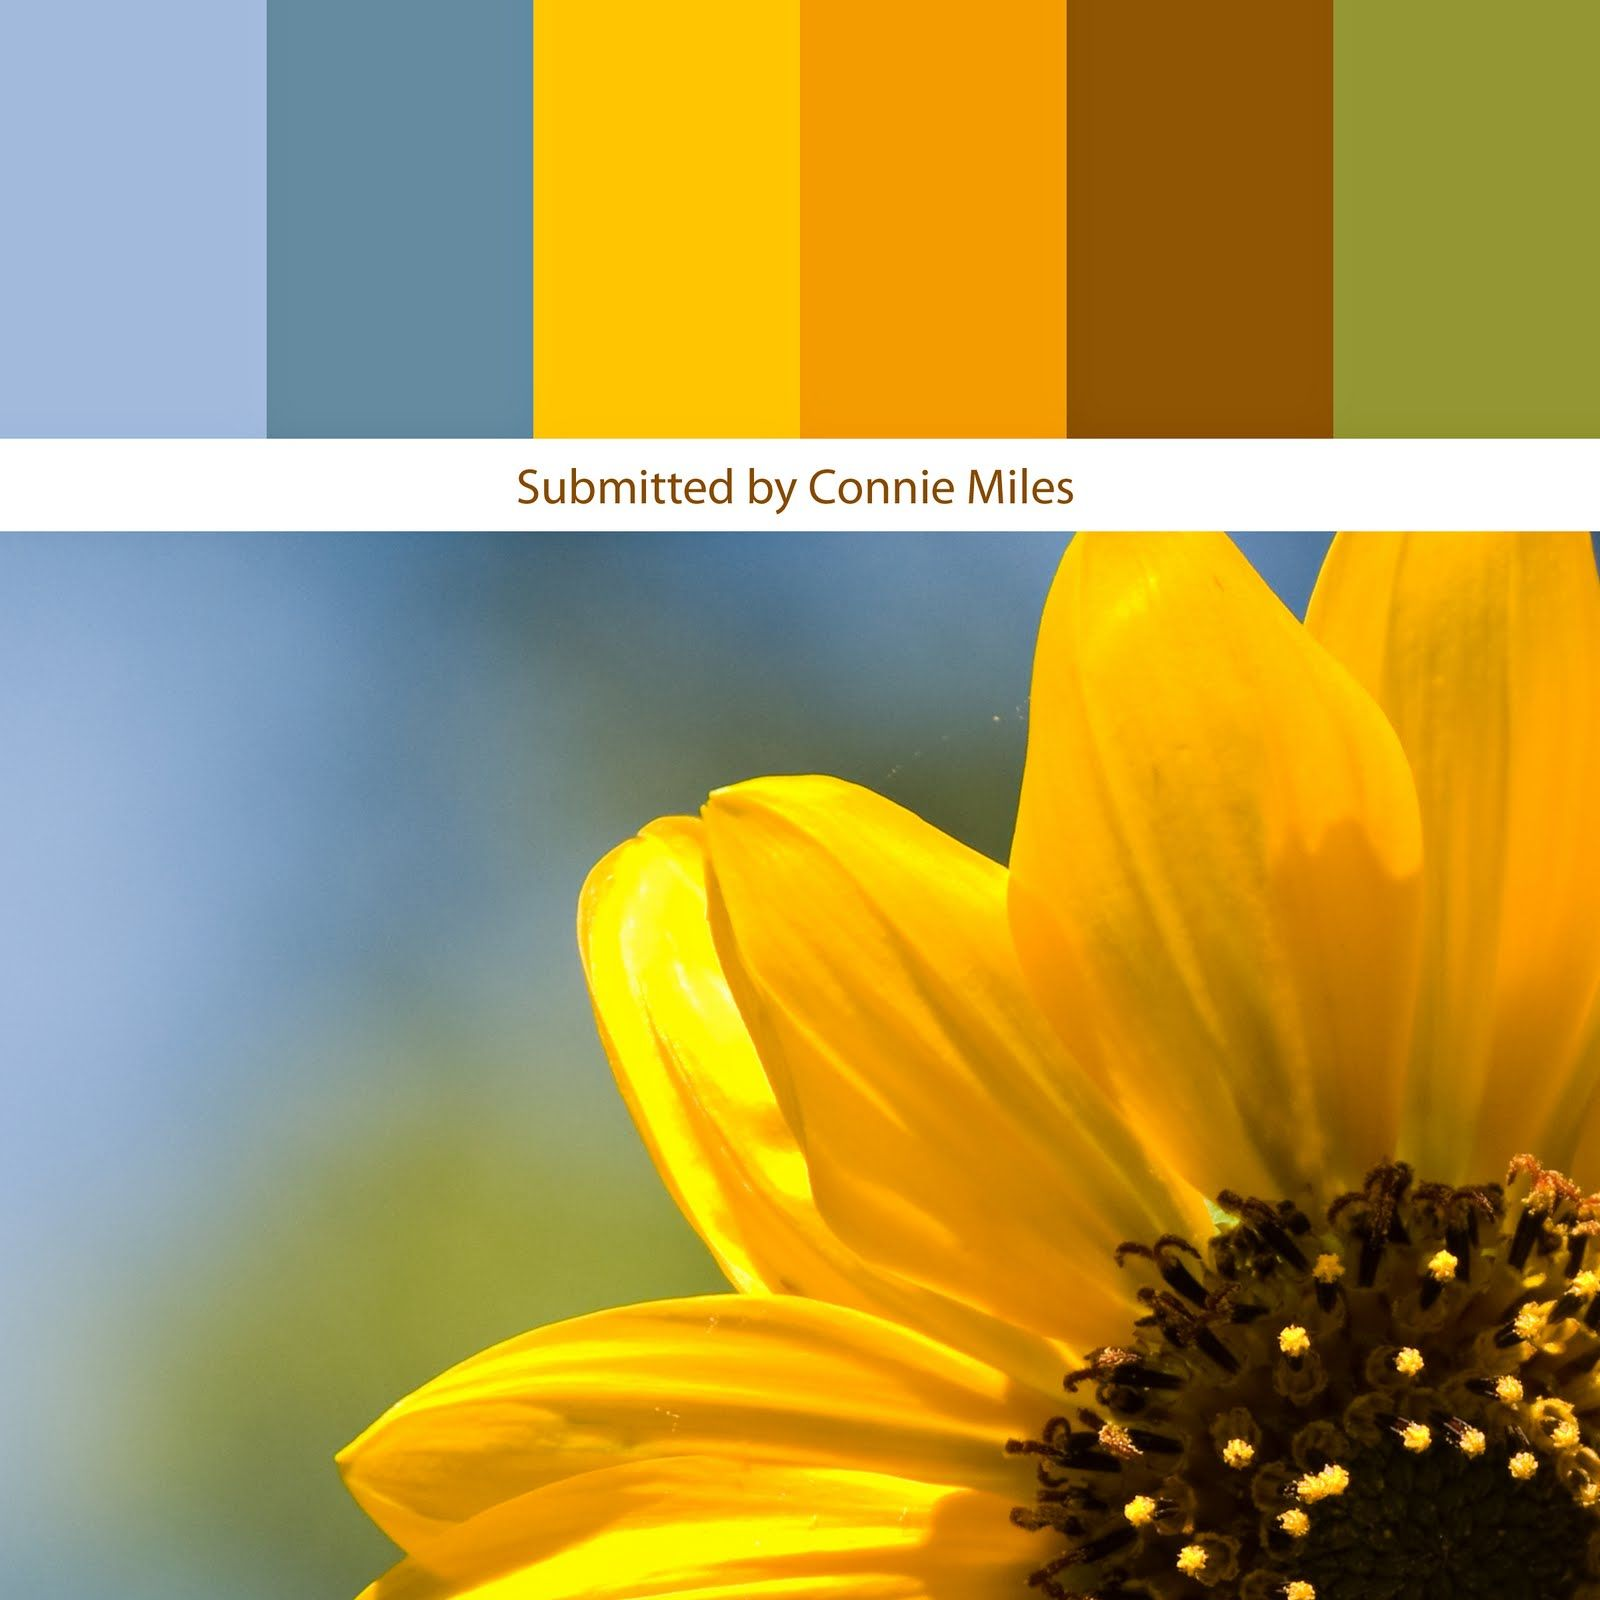 3185087c8b19aafde4785360bf6b38df Sunflower Color Kitchen Ideas on sunflower kitchen decor, sunflower decals for kitchen cupboards, sunflower kitchen towel, sunflower kitchen graphics, sunflower kitchen art, sunflower family, sunflower stained glass window patterns, sunflower wallpaper for kitchen, sunflower kitchen items, sunflower kitchen accessories, sunflower kitchen border,